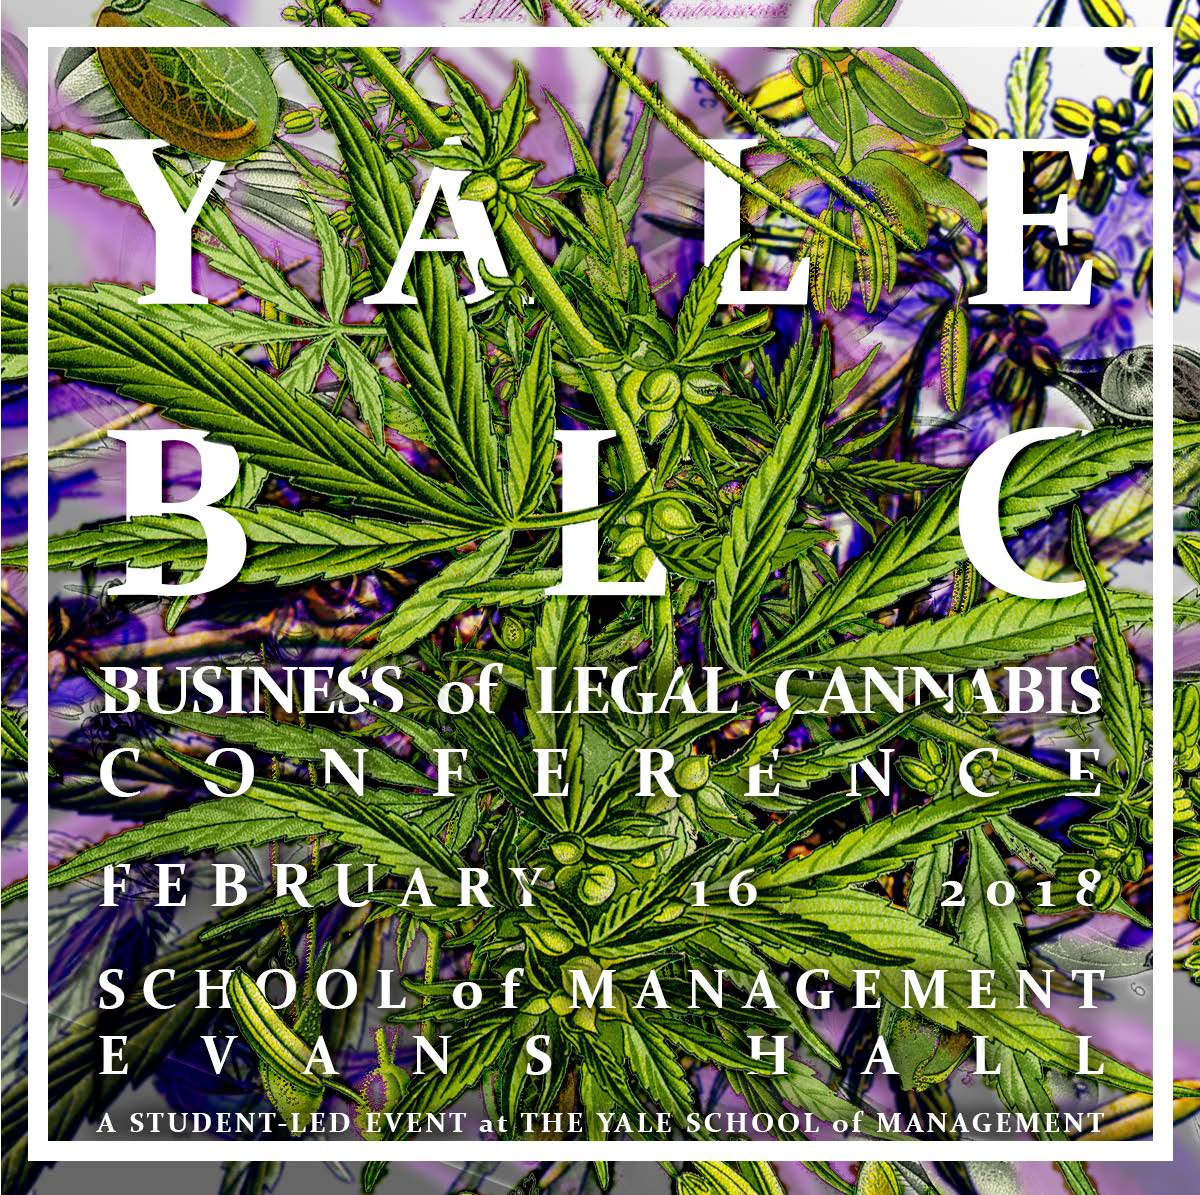 Yale Business of Legal Cannabis Conference